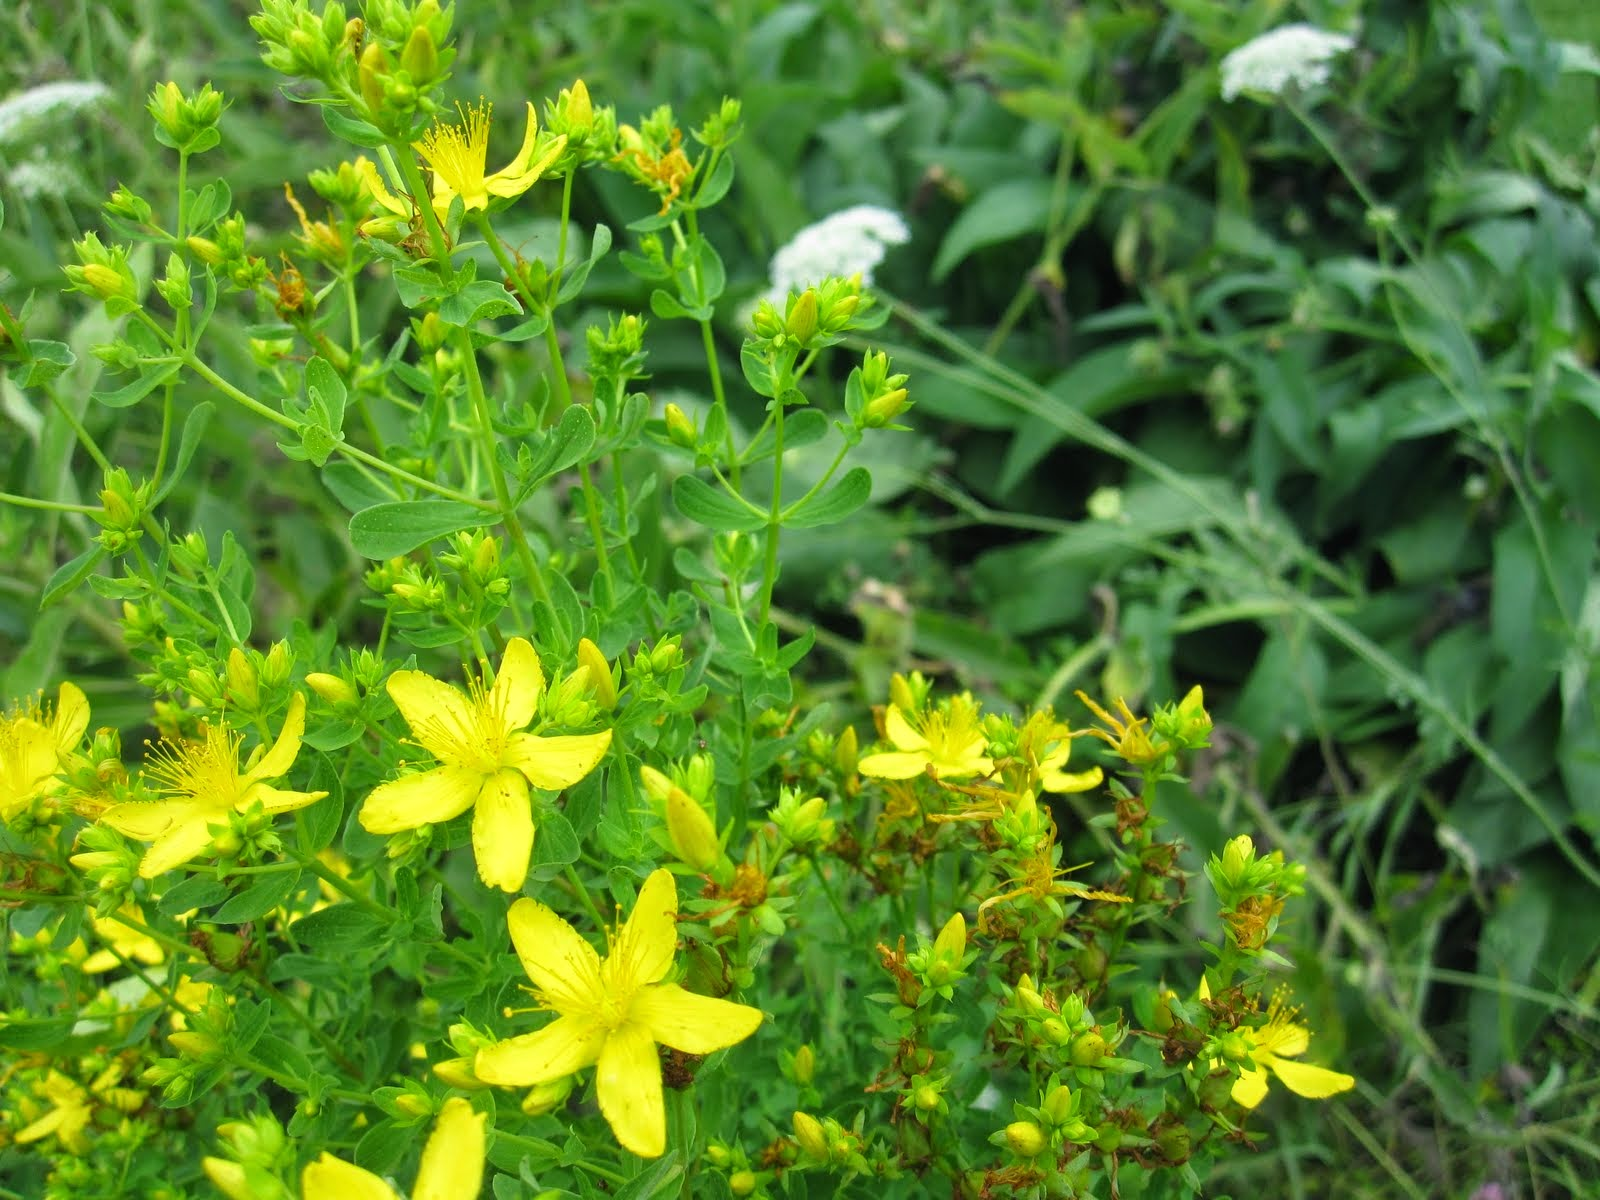 Benefits Of St. John's Wort (Hypericum Perforatum) For Health